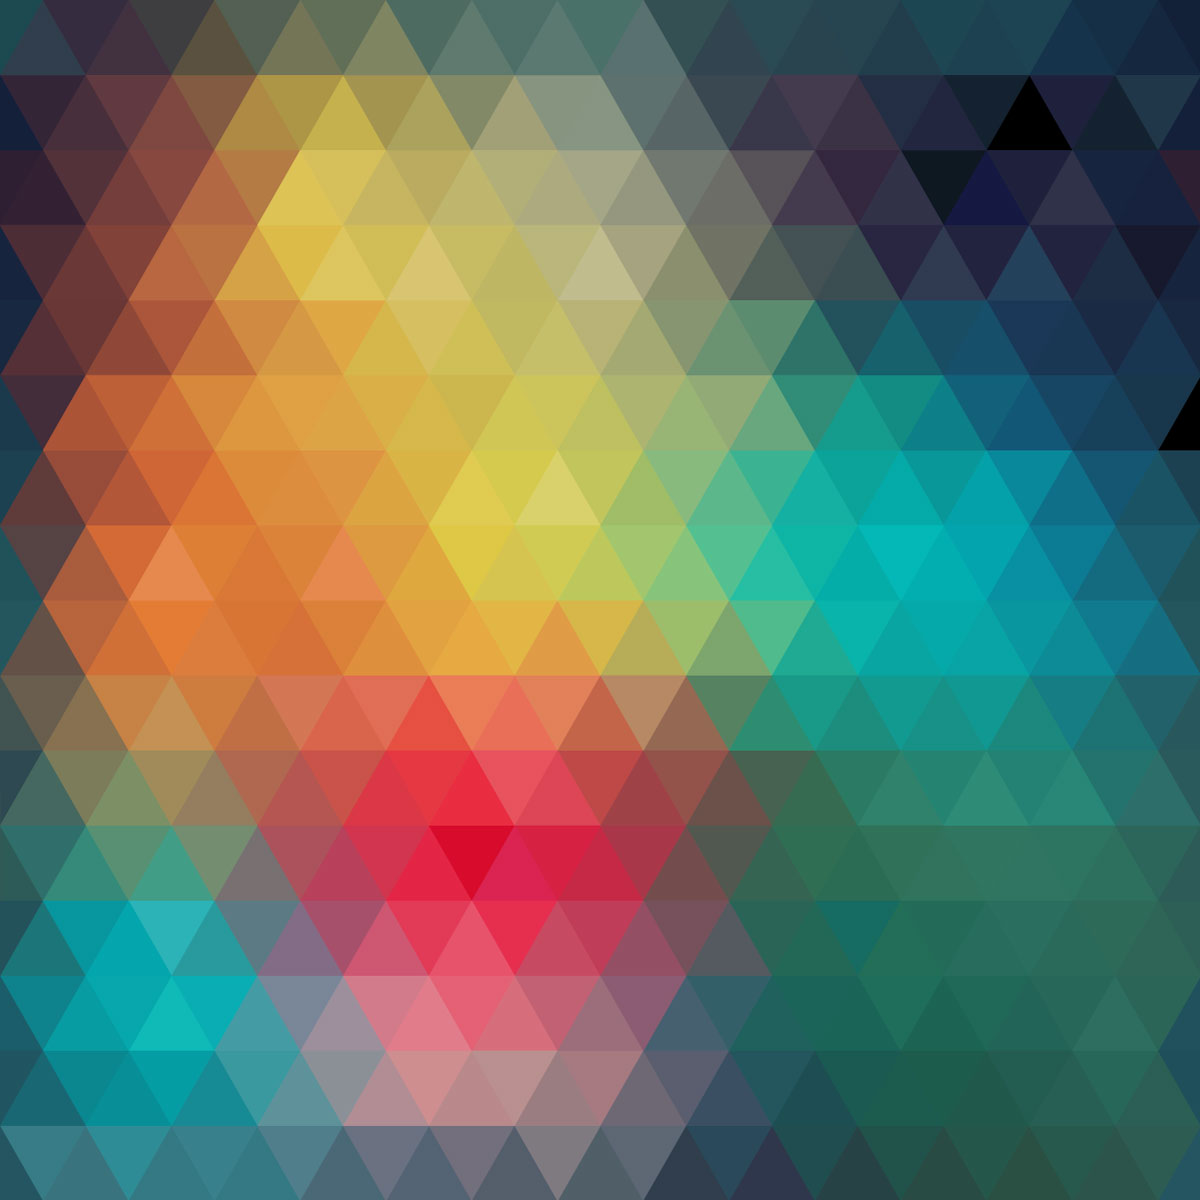 20 Abstract Geometric Background Vector Images